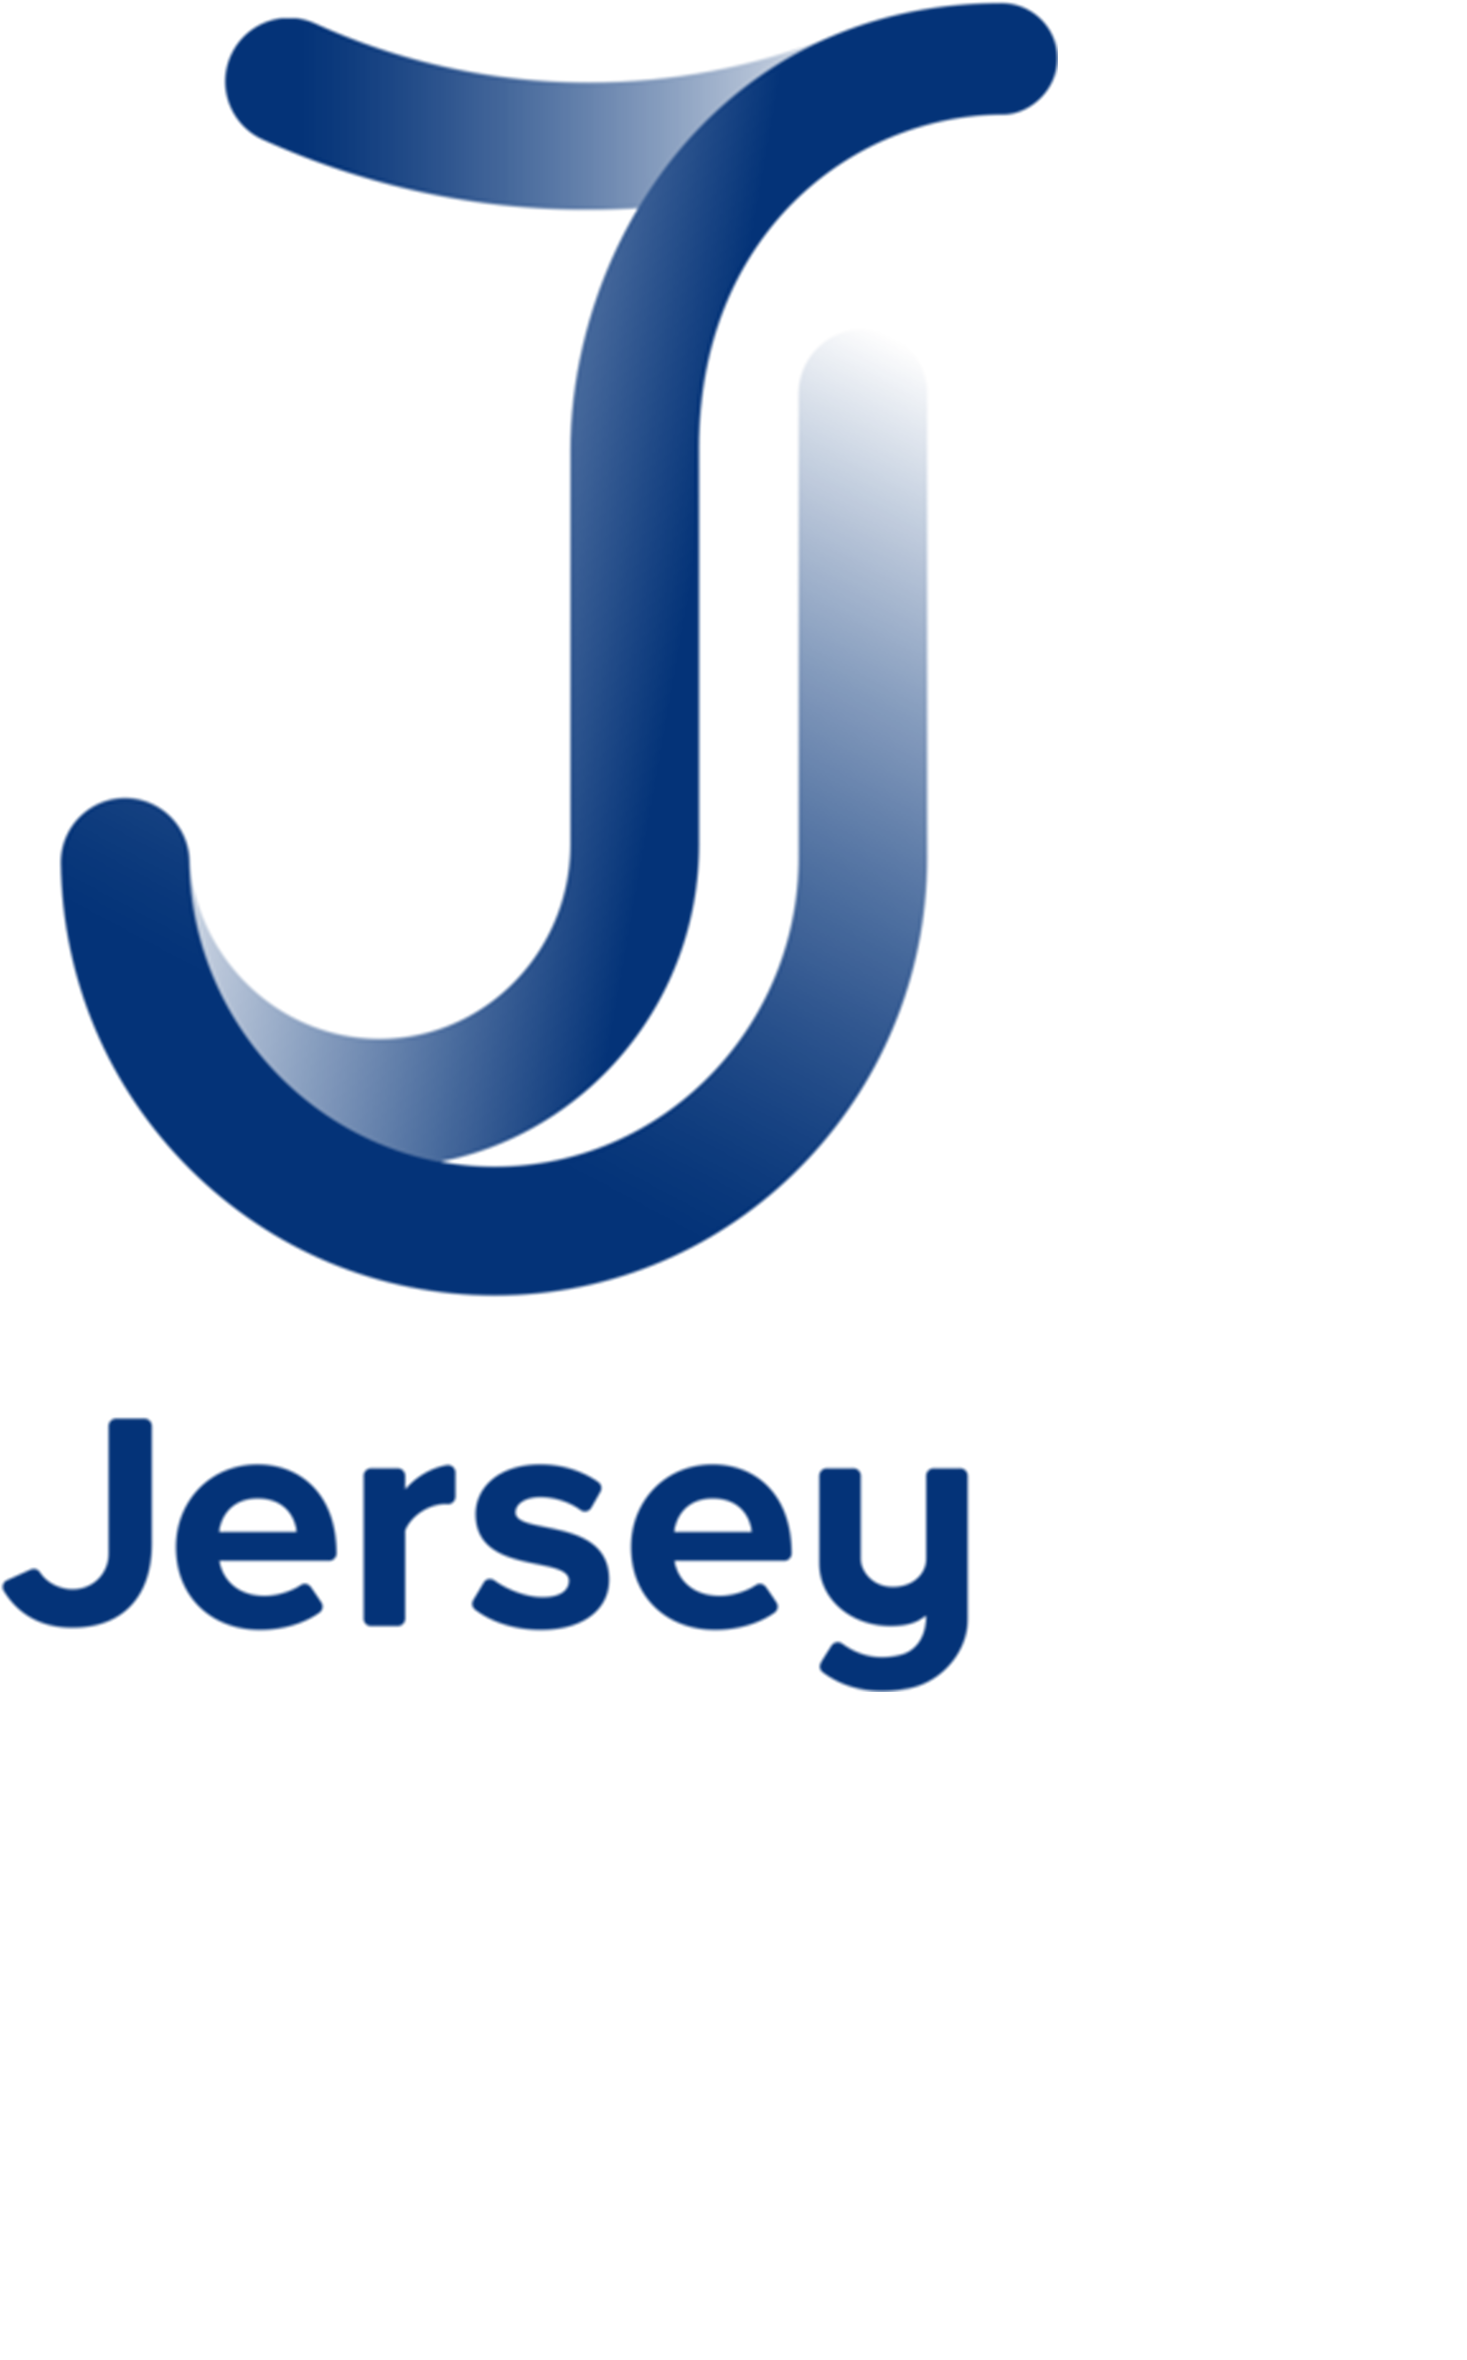 VISIT JERSEY.png